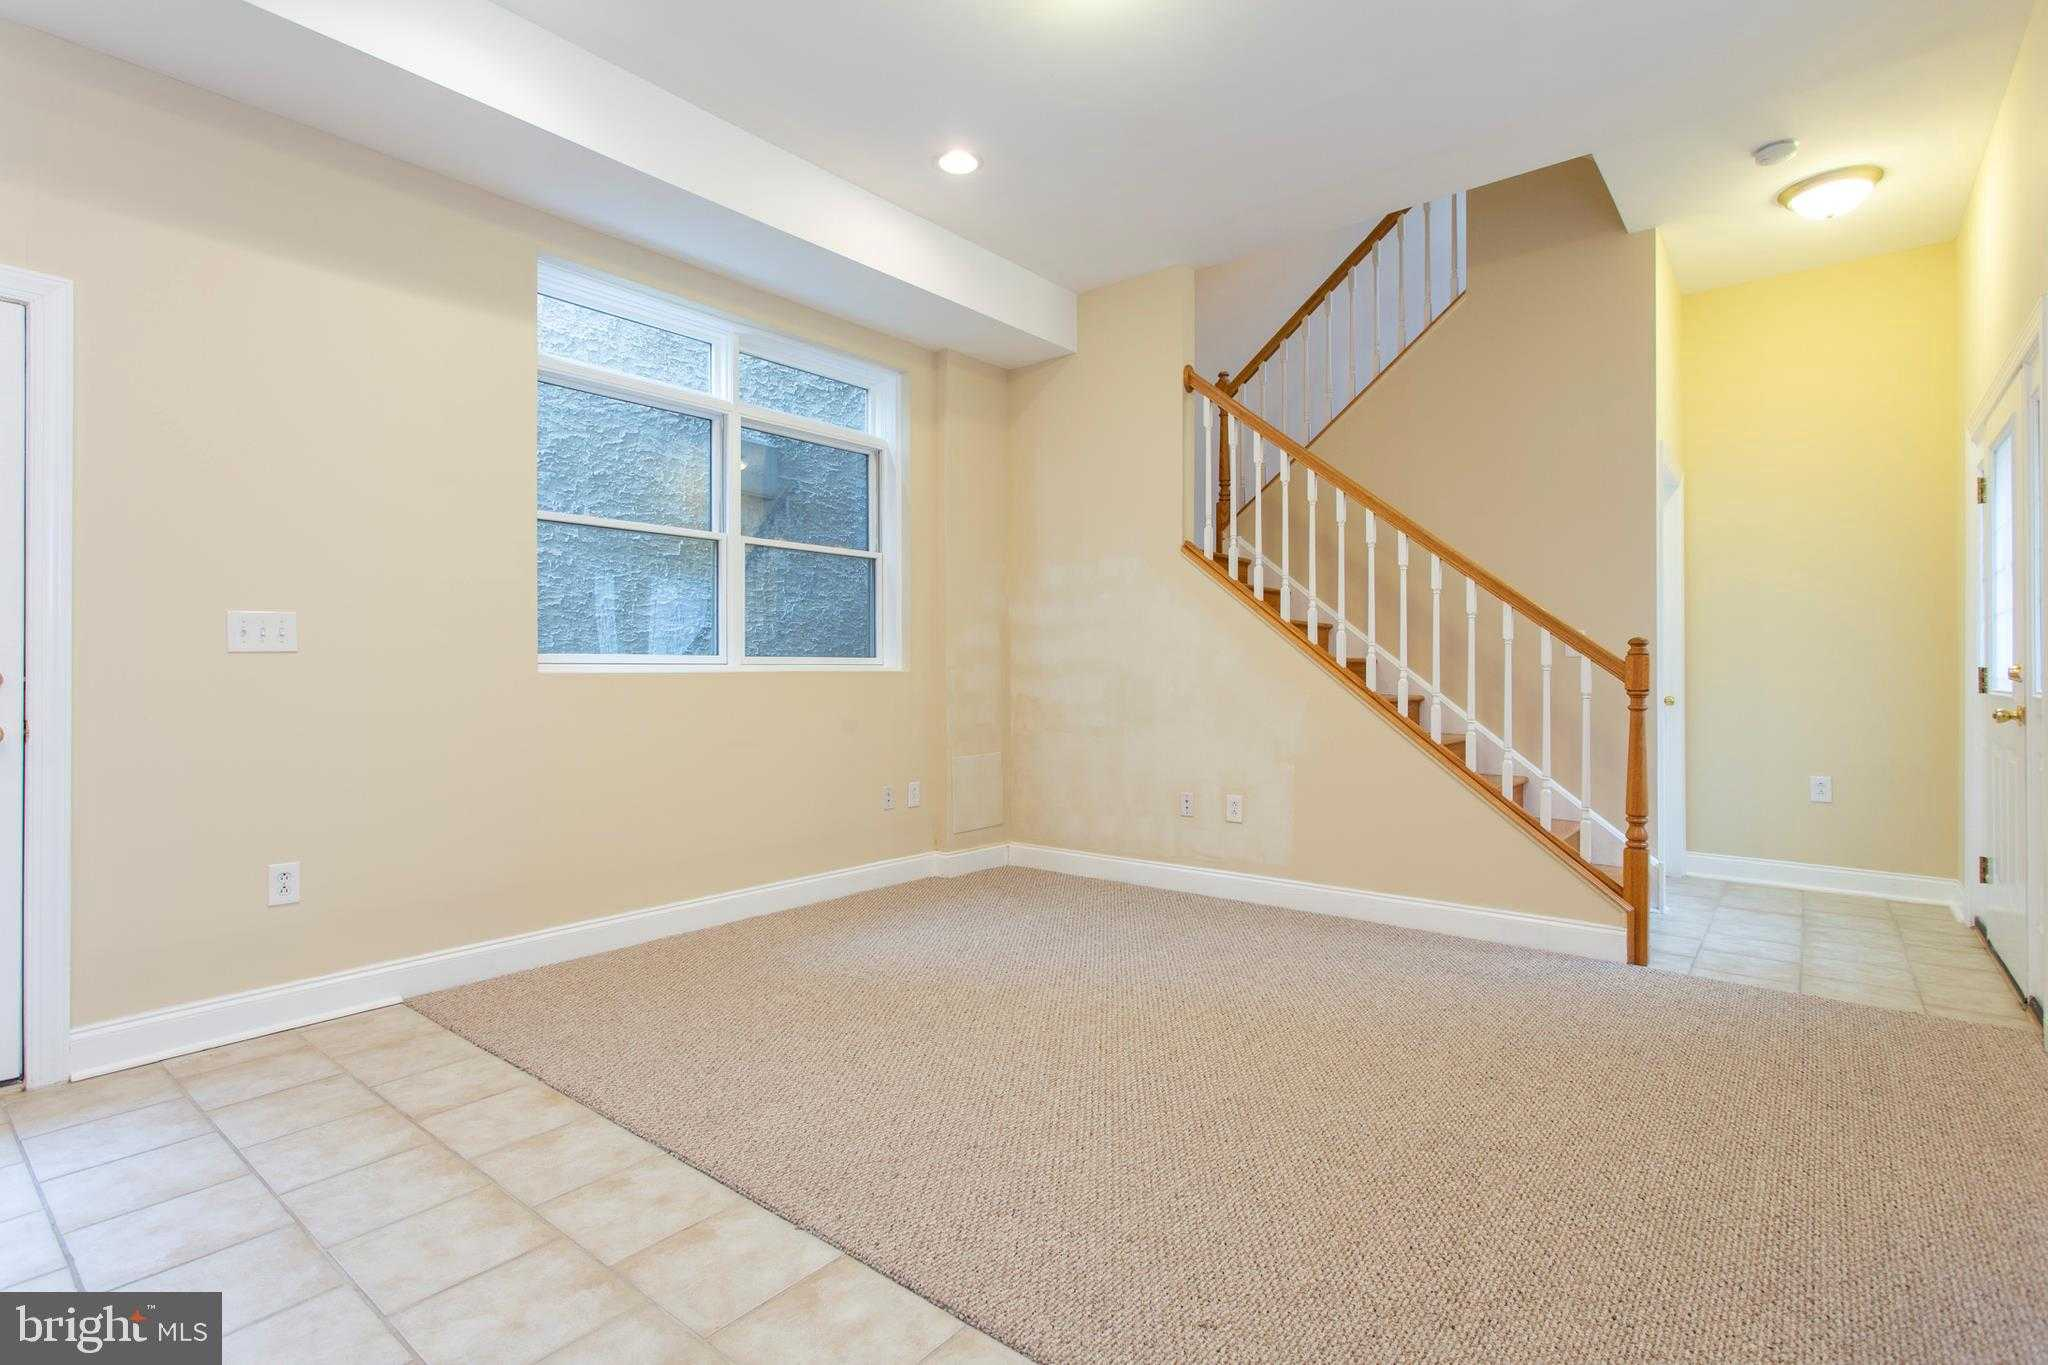 $425,000 - 2Br/2Ba -  for Sale in Bella Vista, Philadelphia